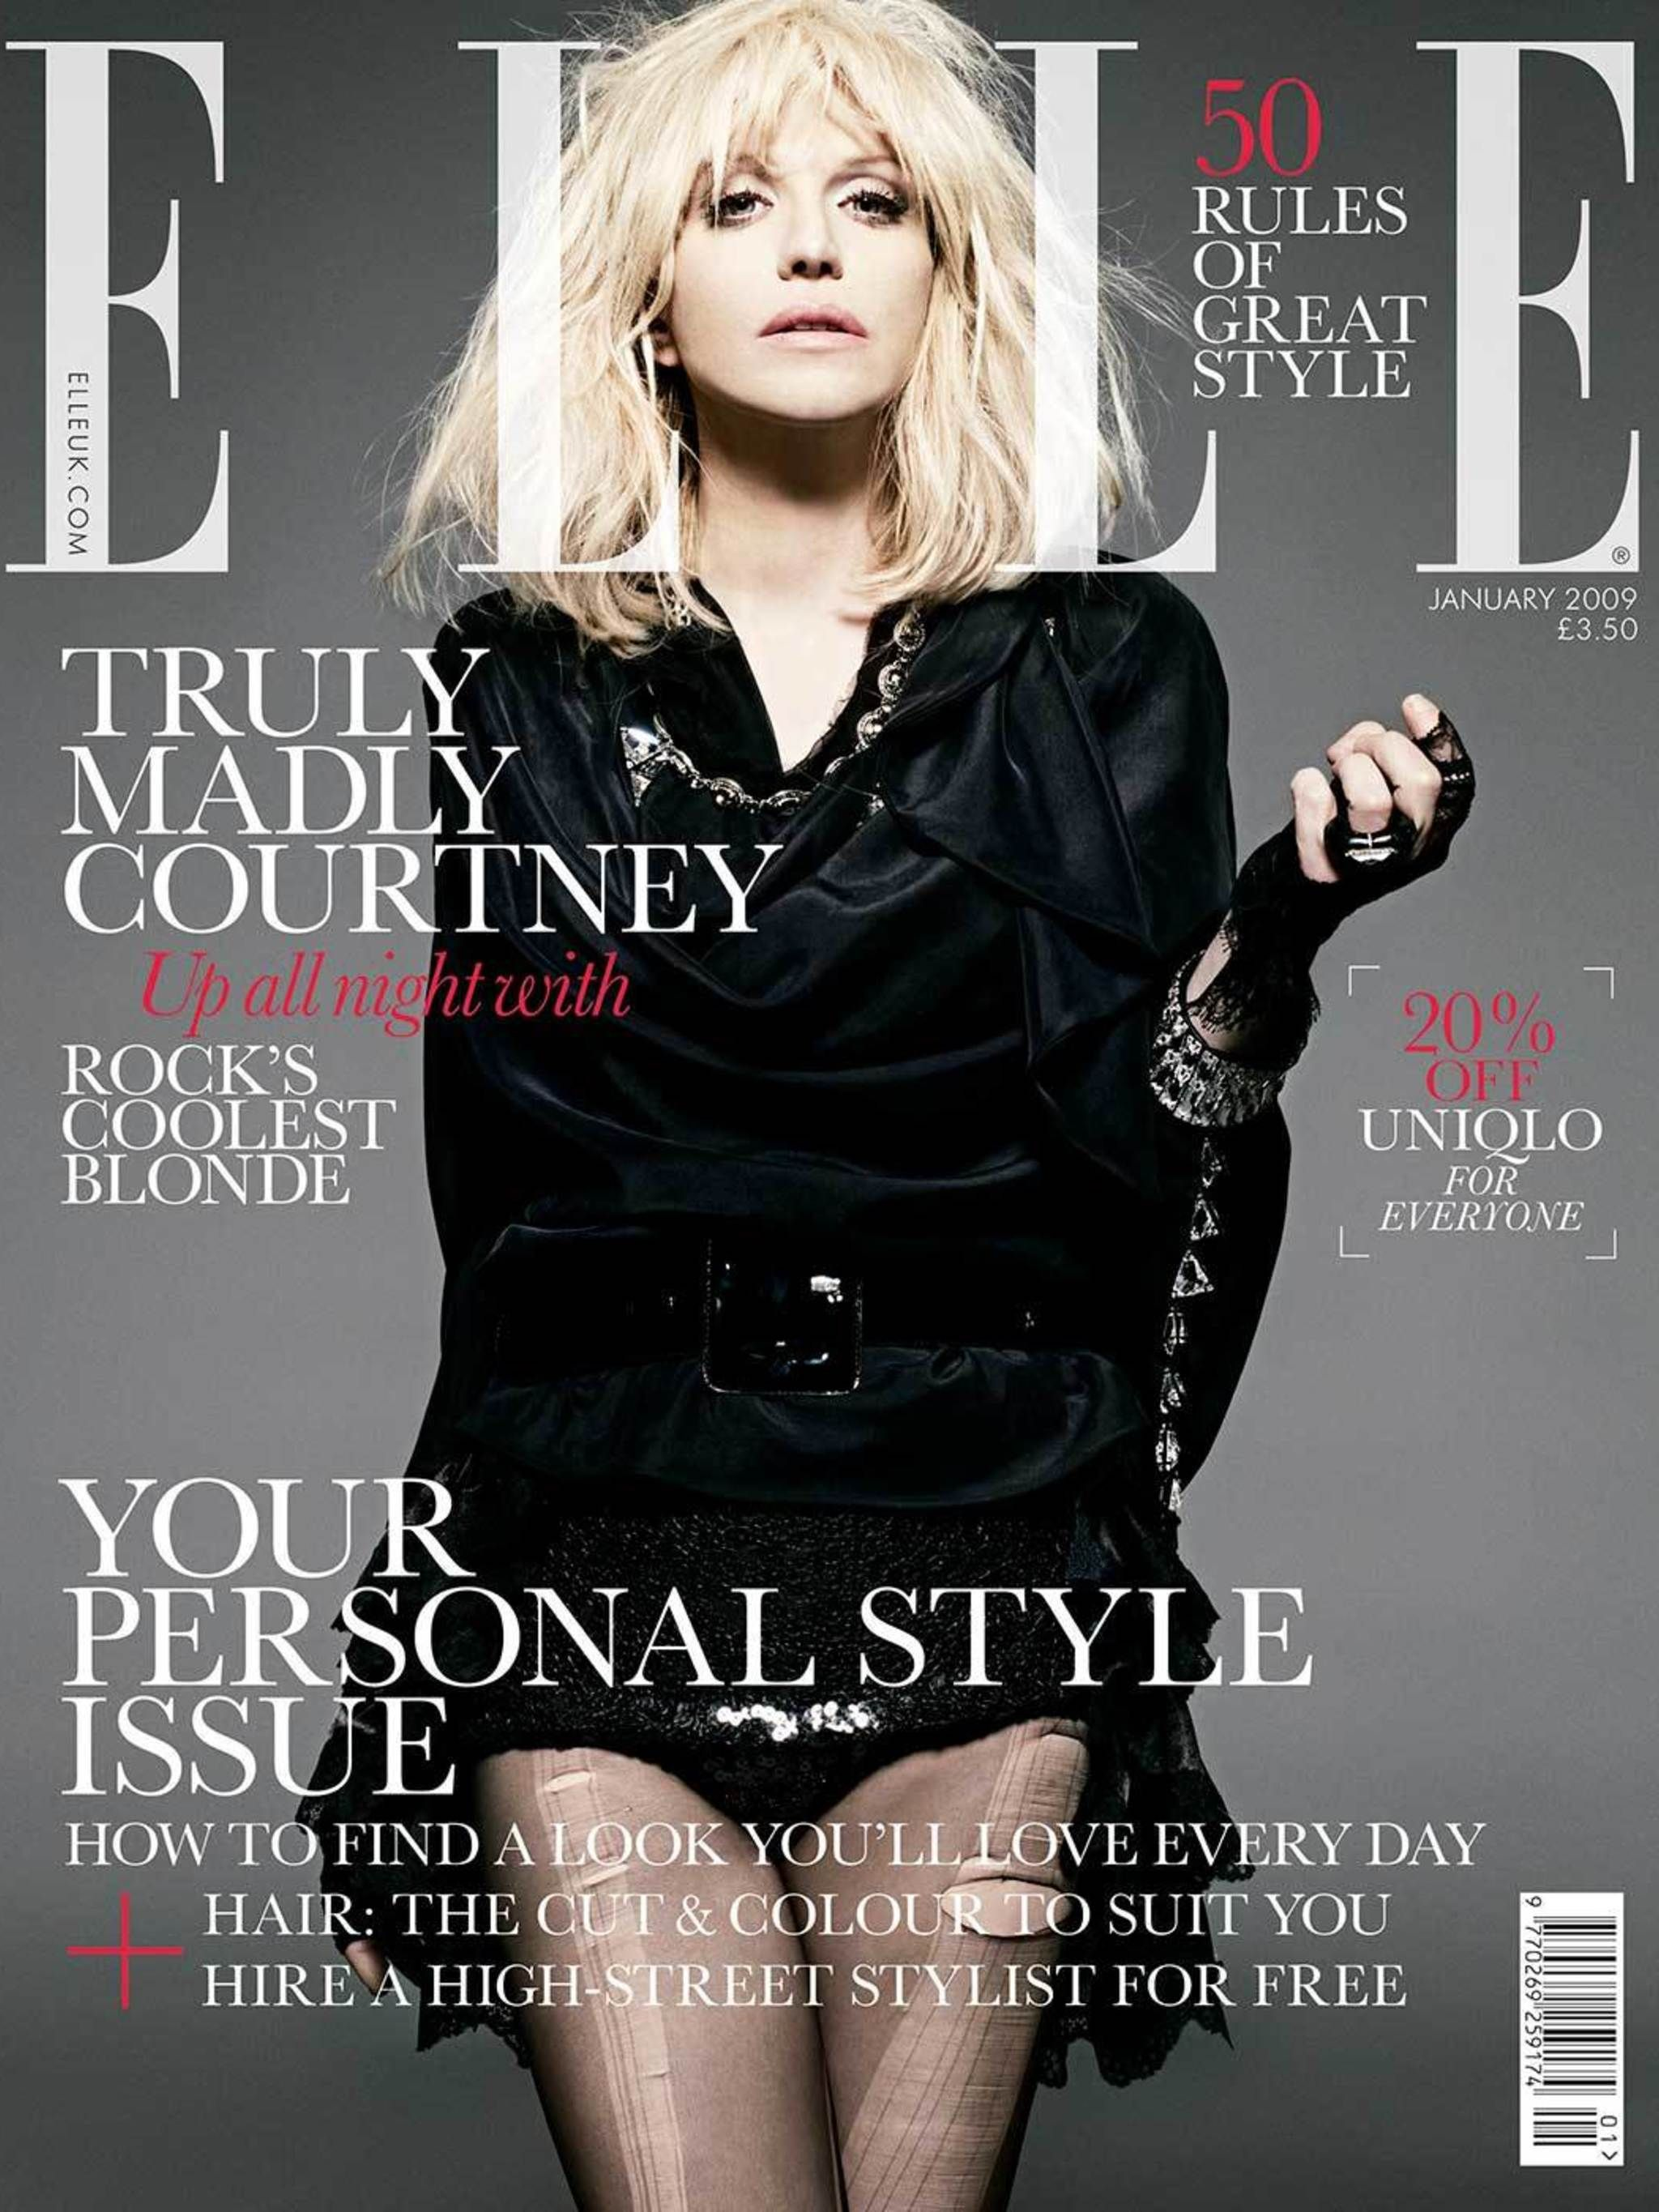 British Elle called the Woman of the Year 02/25/2010 41